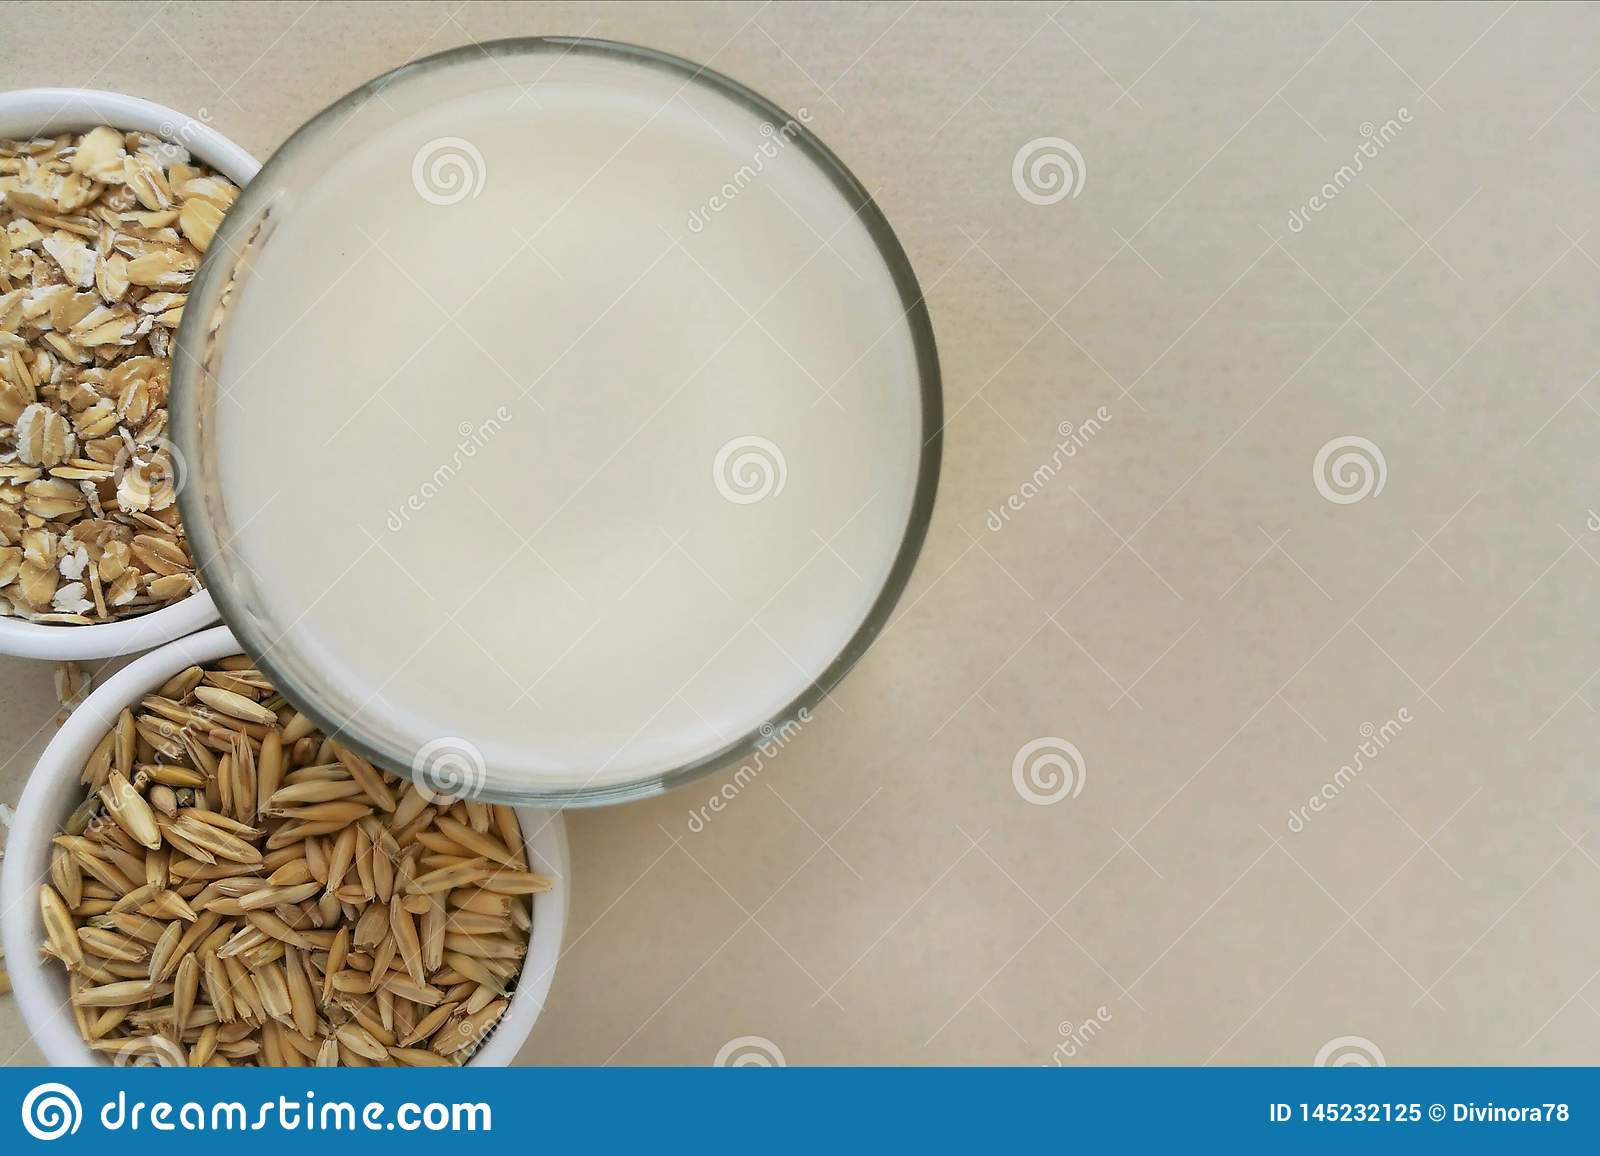 Oatmeal, oatmeal νιφάδες και σιτάρια βρωμών